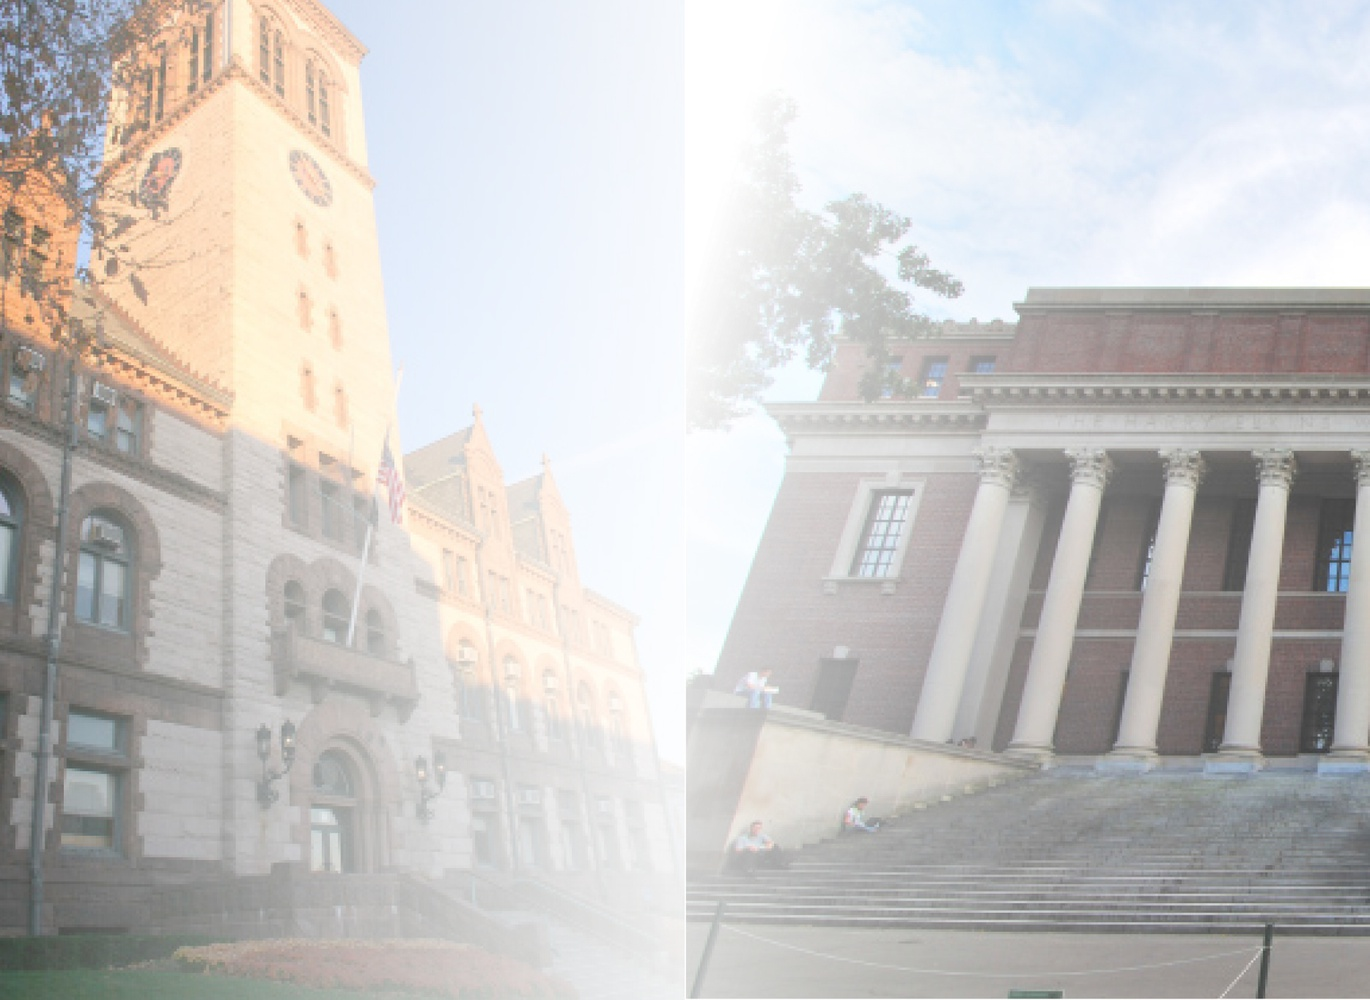 Cambridge and Harvard have been partners for nearly four centuries.